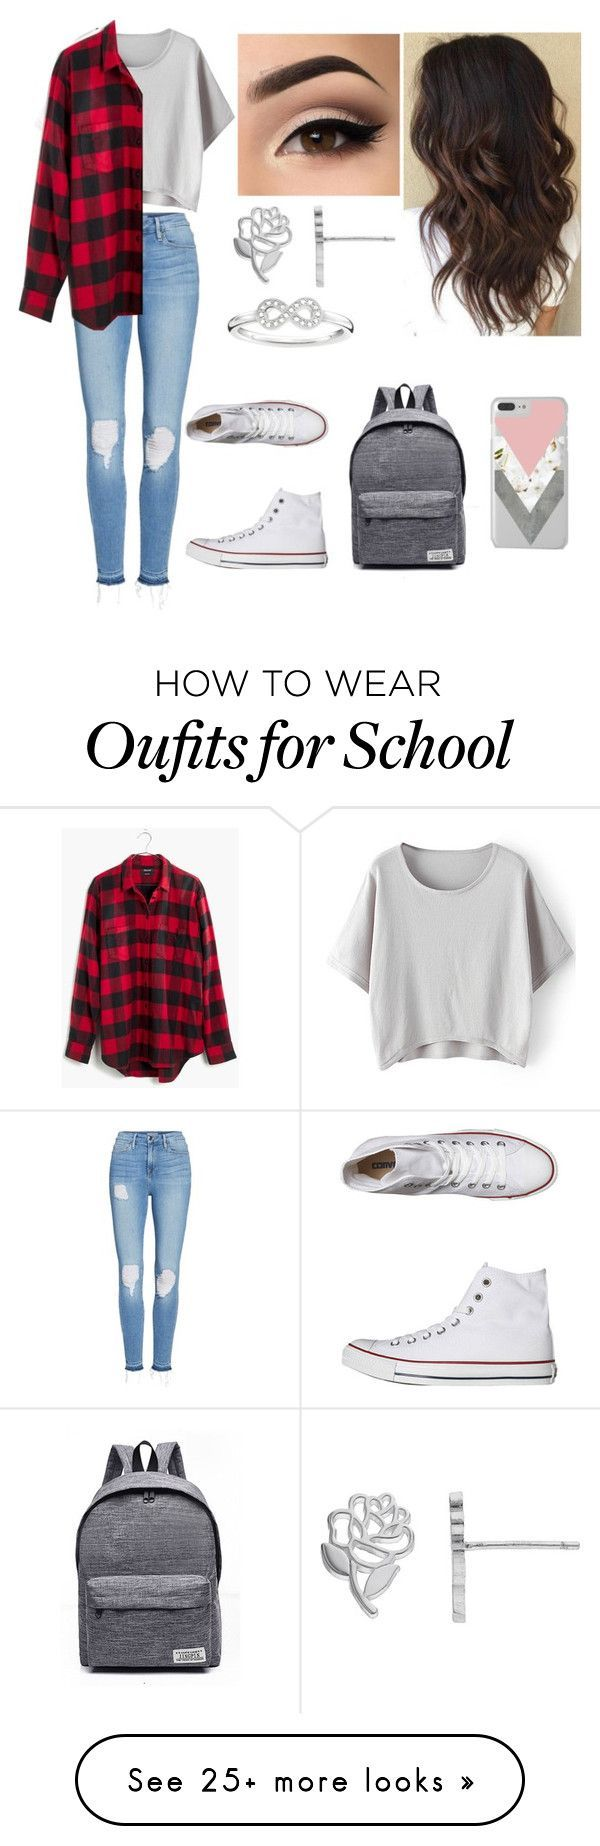 """Untitled #60"" by pinkj3w3l on Polyvore featuring Good American, Converse, WithChic, Madewell, Disney and Thomas Sabo"